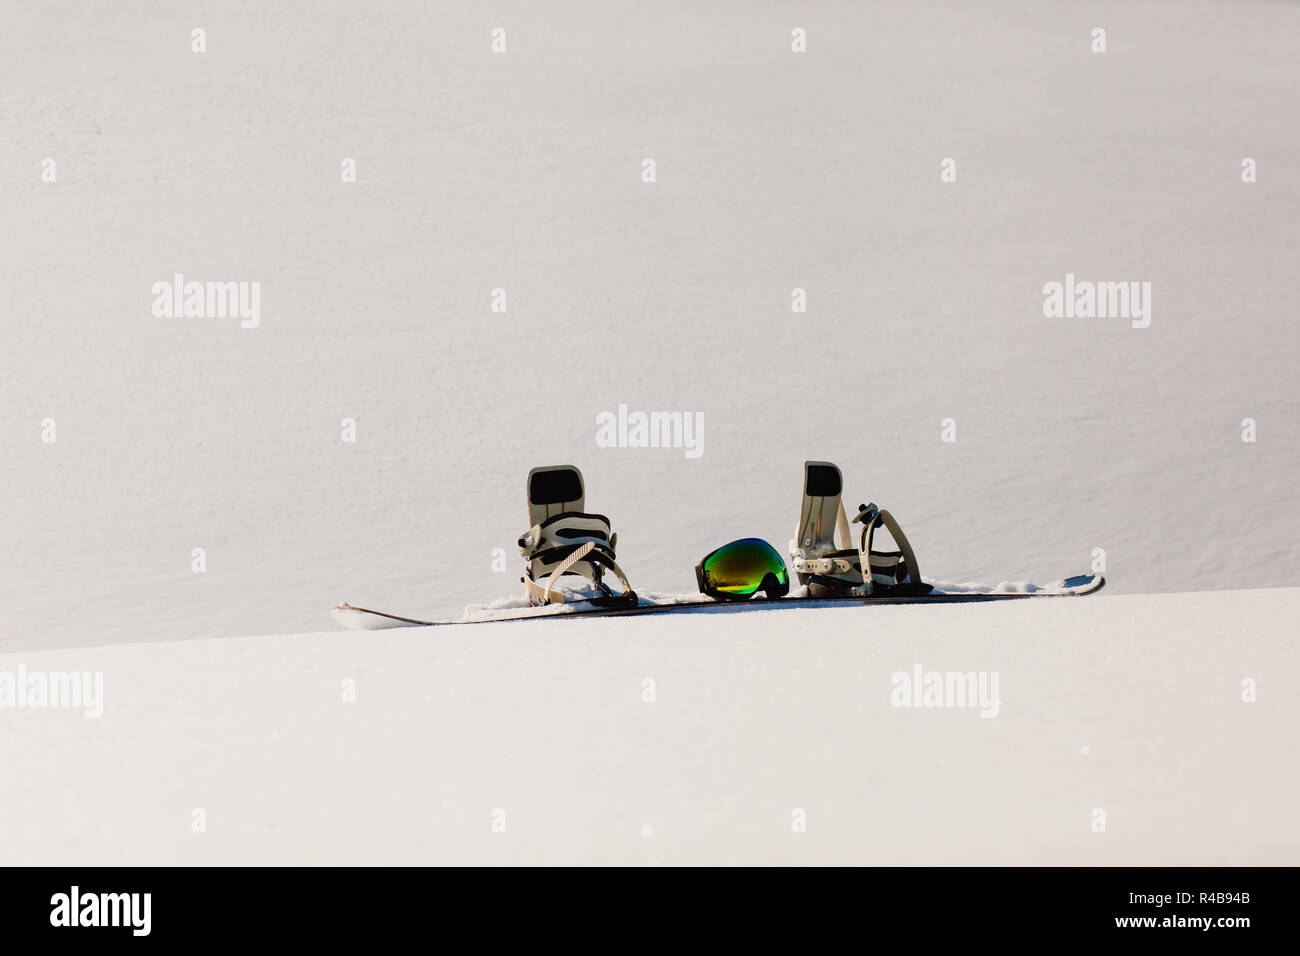 Snowboard and ski googles laying on a snow near the freeride slope - Stock Image